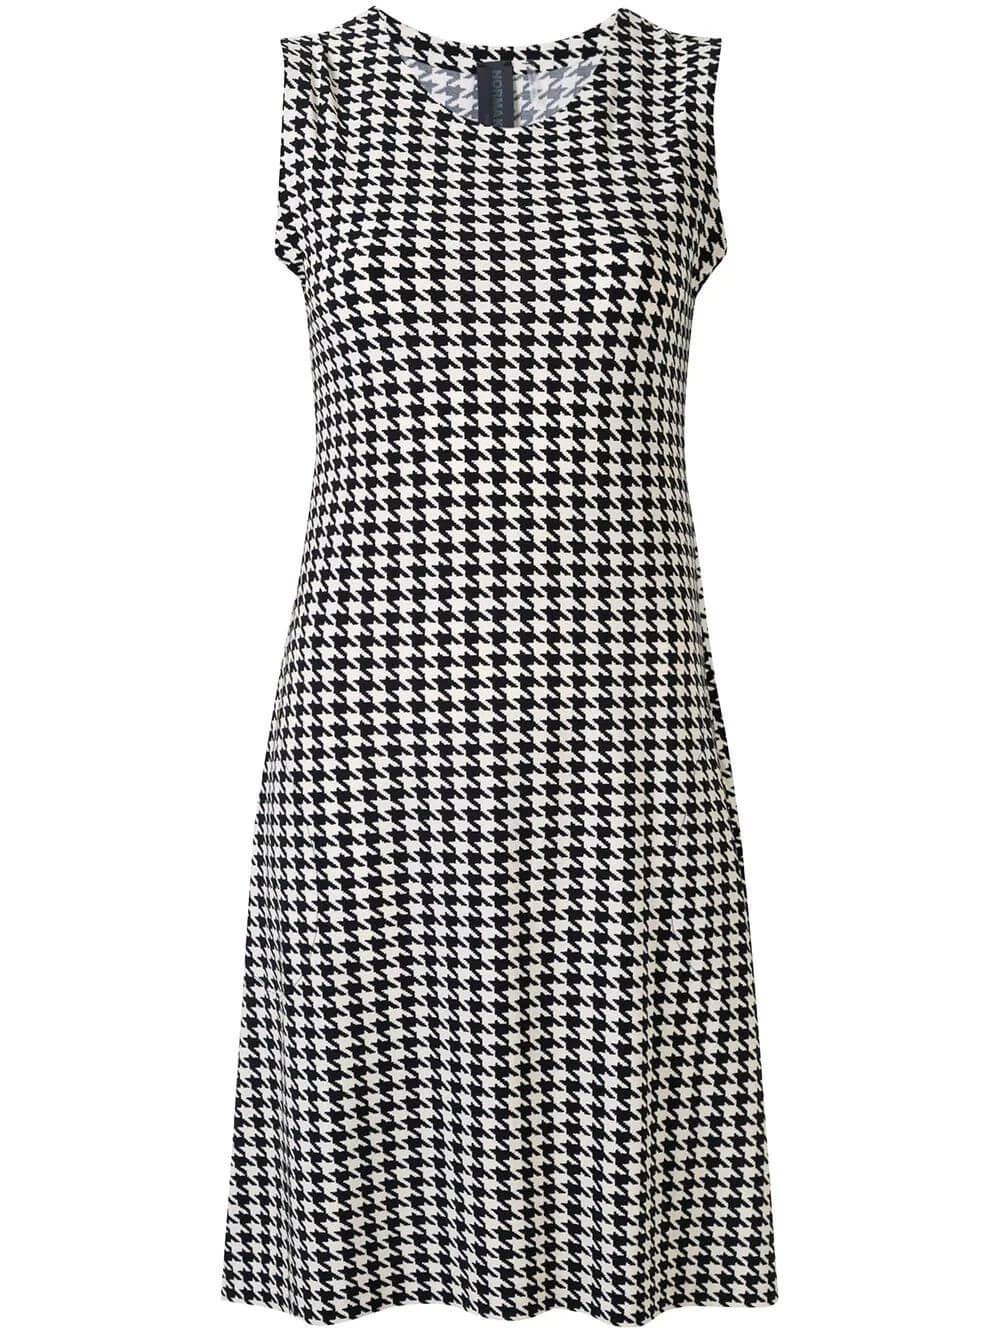 Houndstooth Swing Dress Item # KK3203PL013472